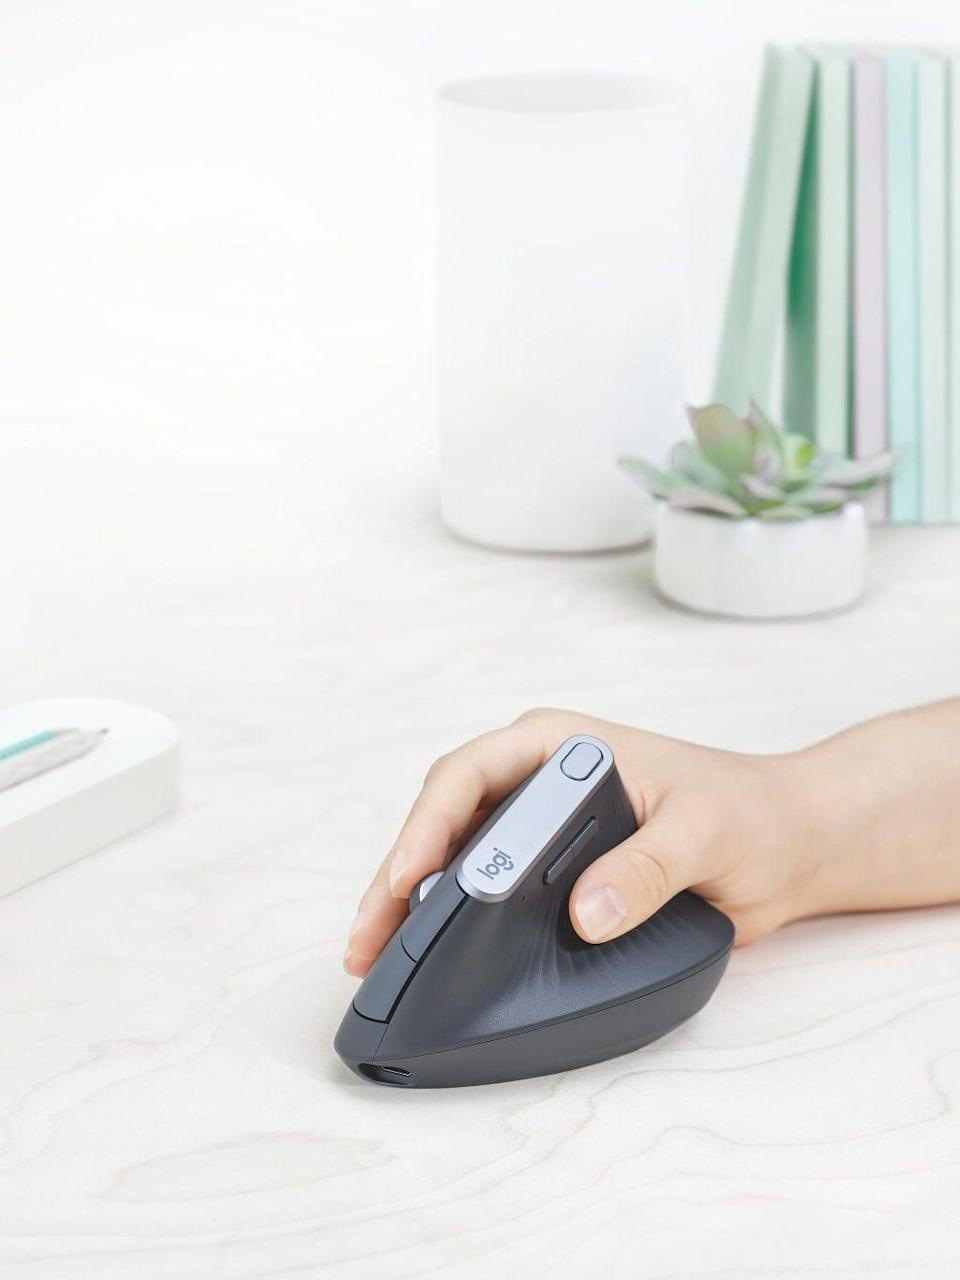 Logitech's MX Vertical Advanced Ergonomic Mouse ($99) features a 57-degree vertical angle that allows for a 'handshake' grip for greater comfort.